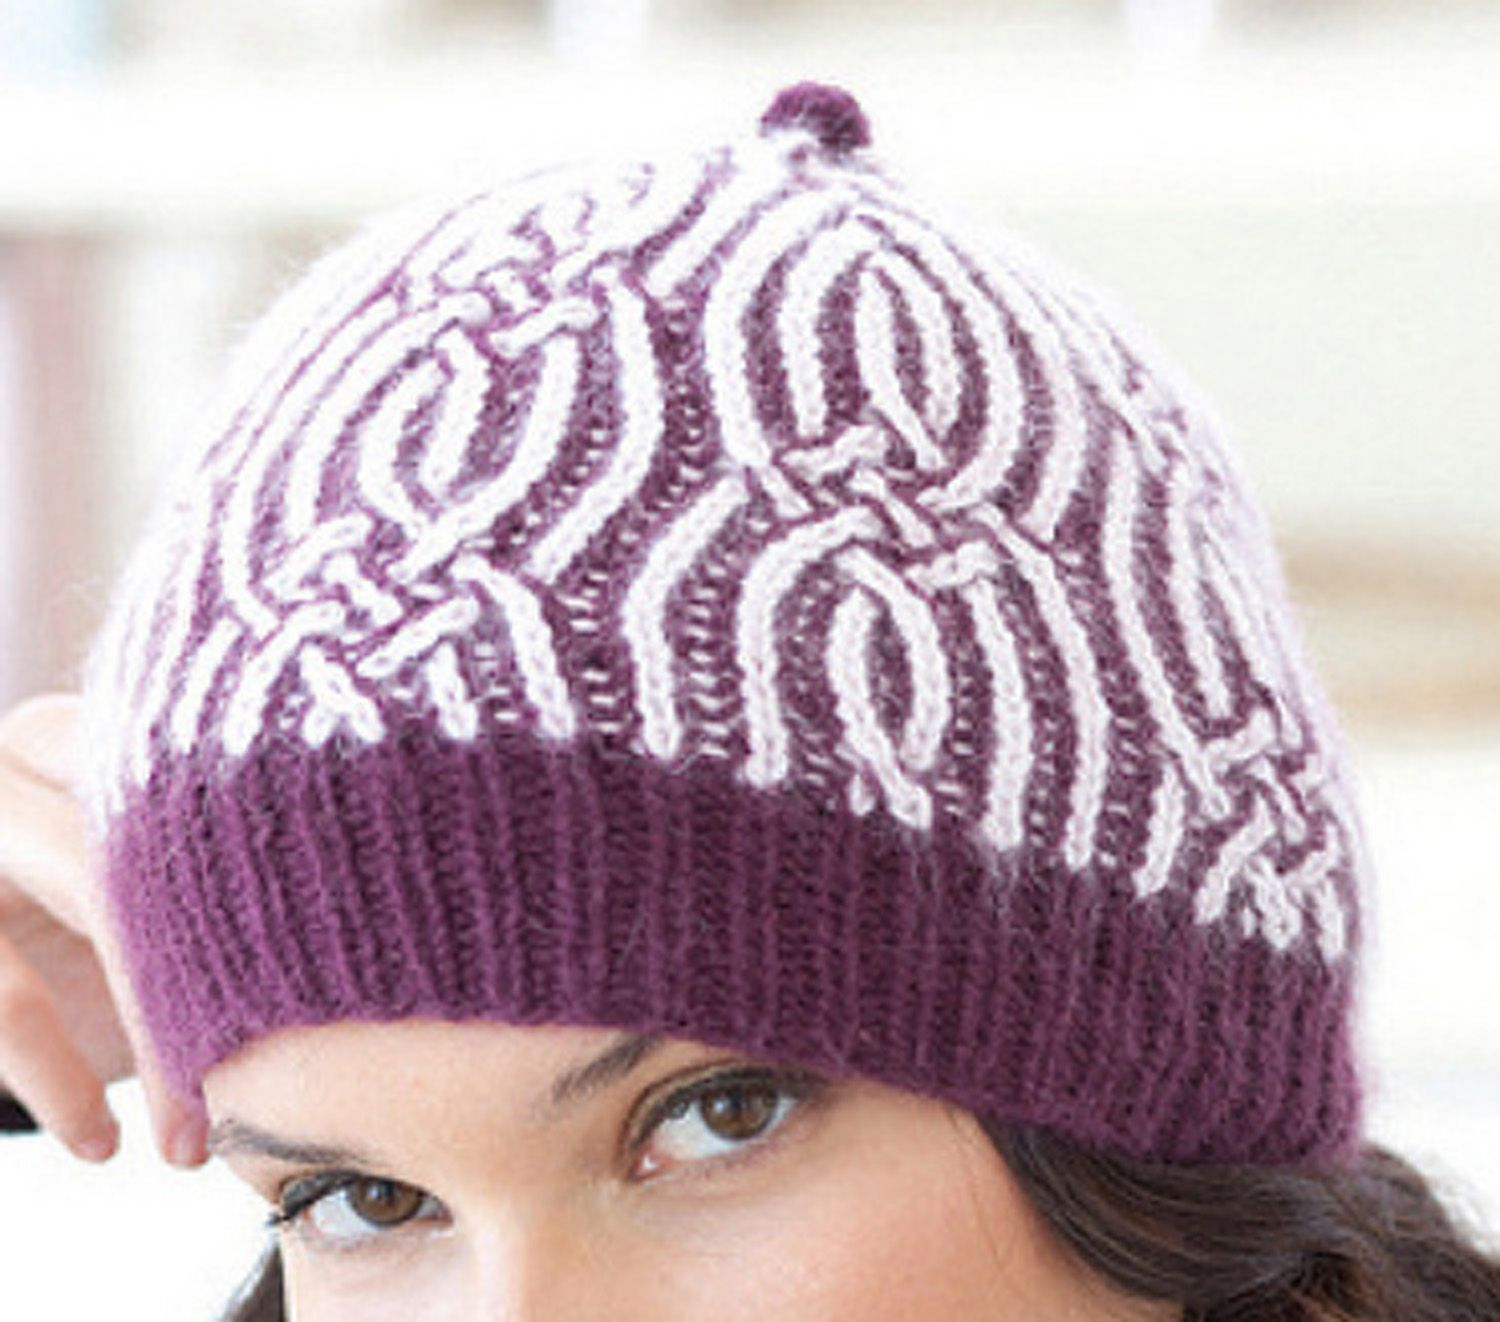 Knitting Designs In Two Colours : Brioche knitting with two colors marchant s crossing